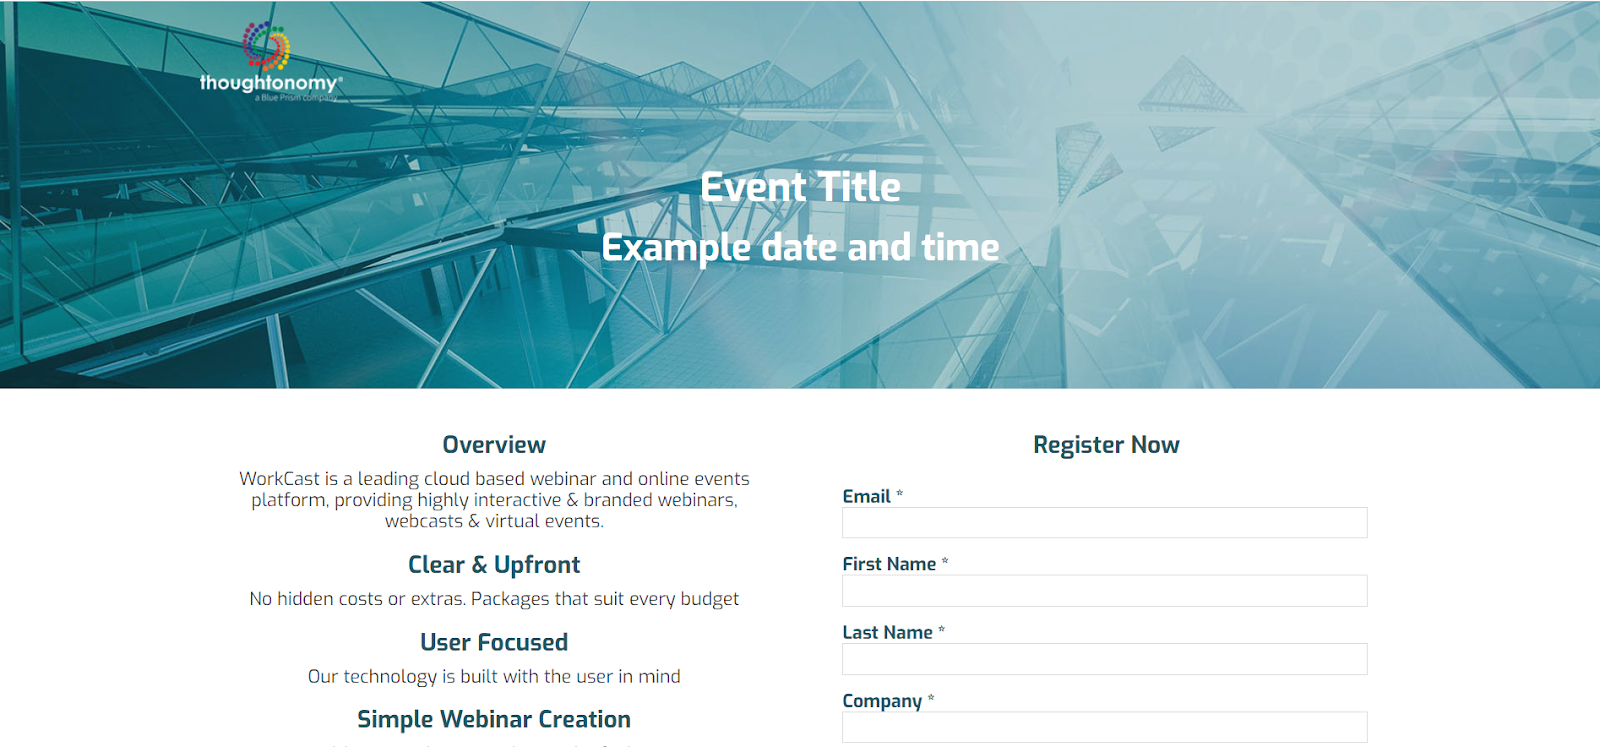 Best Webinar Design Example: thoughtonomy